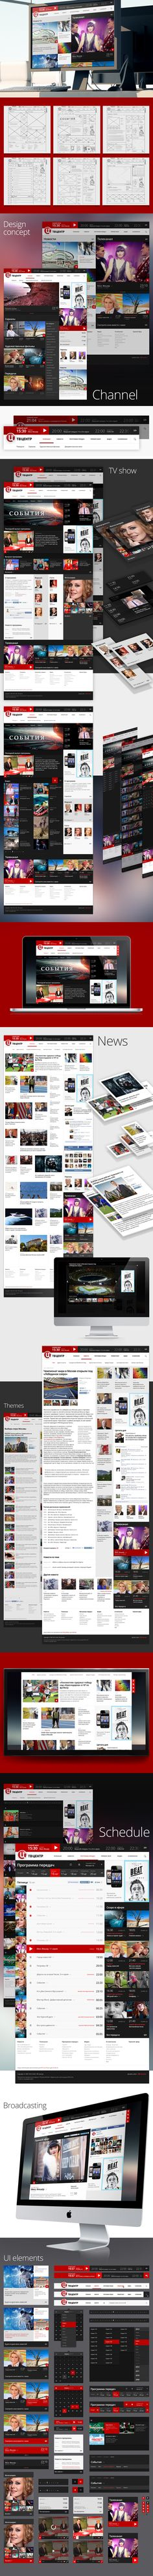 TVCenter on Web Design Served